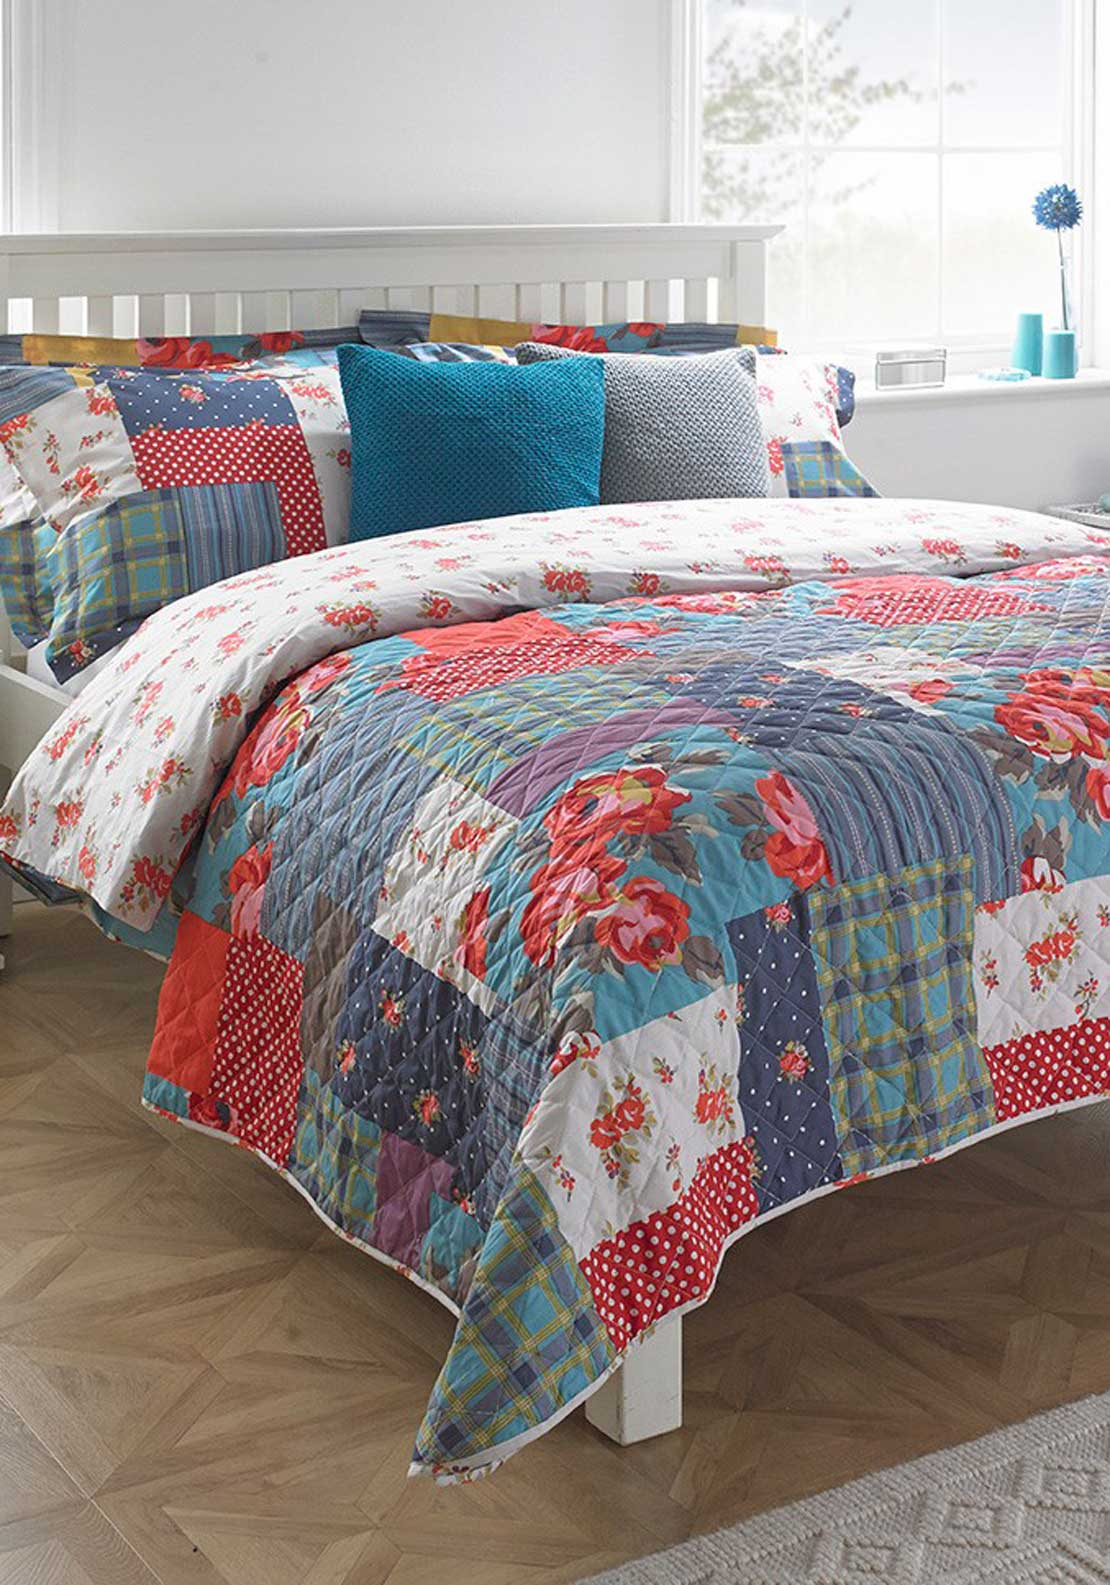 Paoletti Patch Work Quilted Bedspread 240 x 260cm, Red and Blue